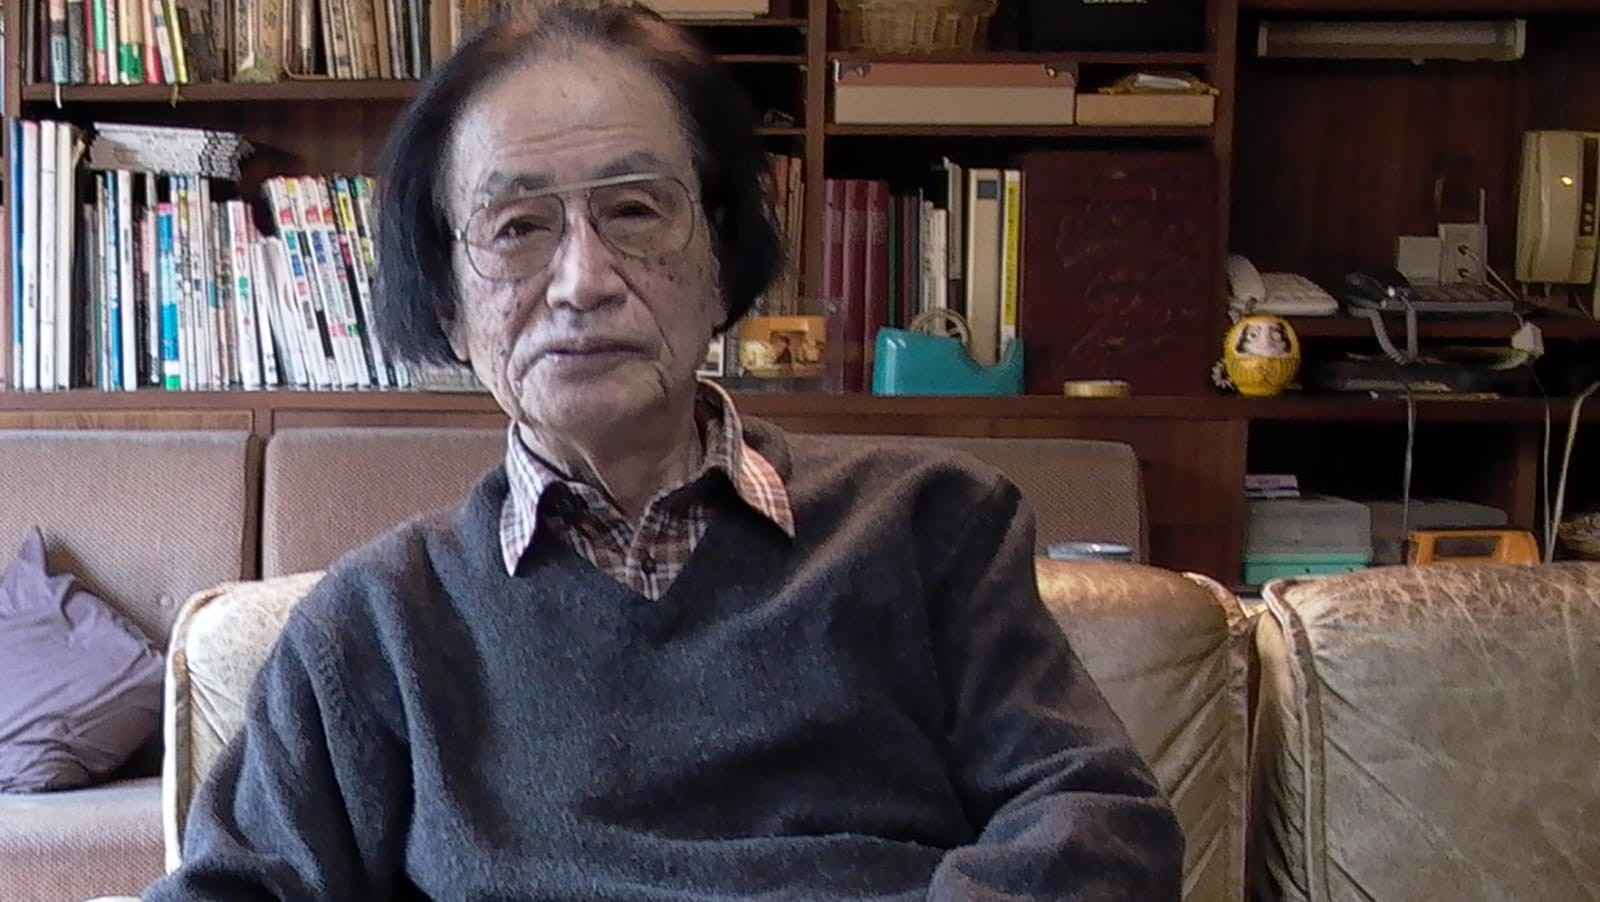 Mightier Than the Sword: Shinobu Hashimoto at 100